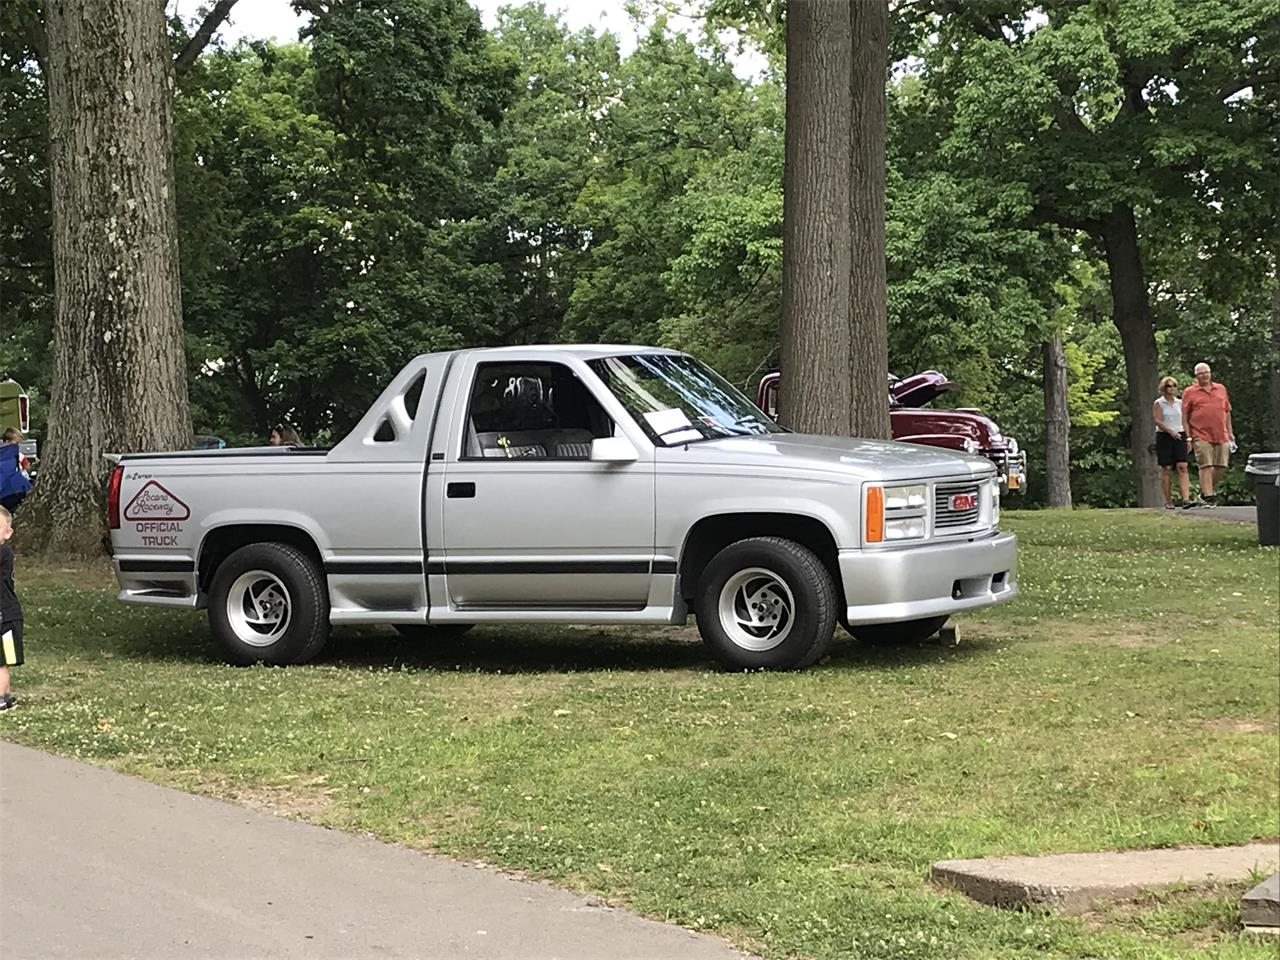 for sale 1990 gmc sierra in syracuse, new york cars - syracuse, ny at geebo